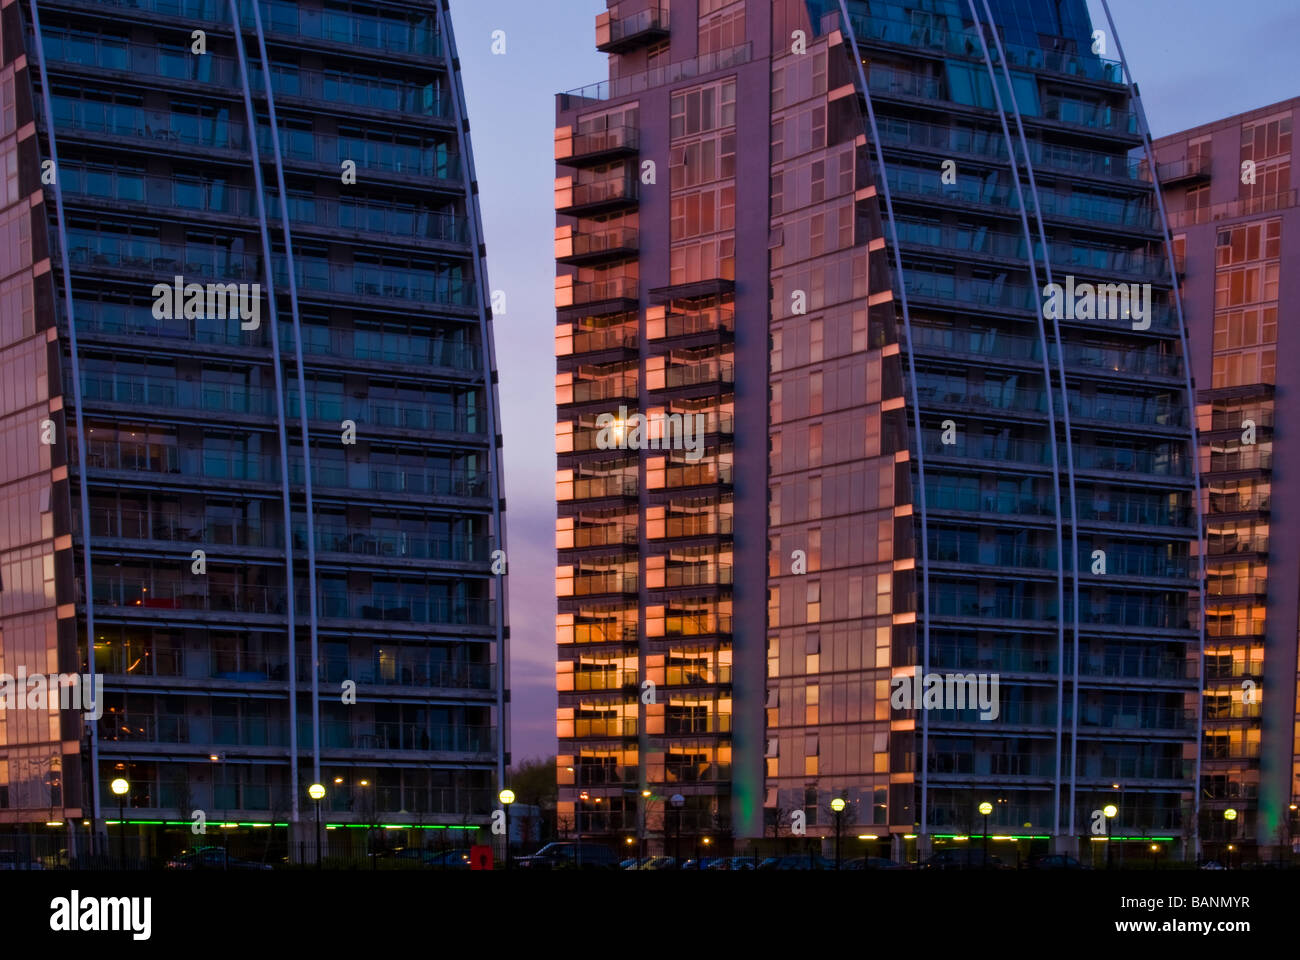 NV Buildings at Salford Quays, Manchester, England, UK - Stock Image